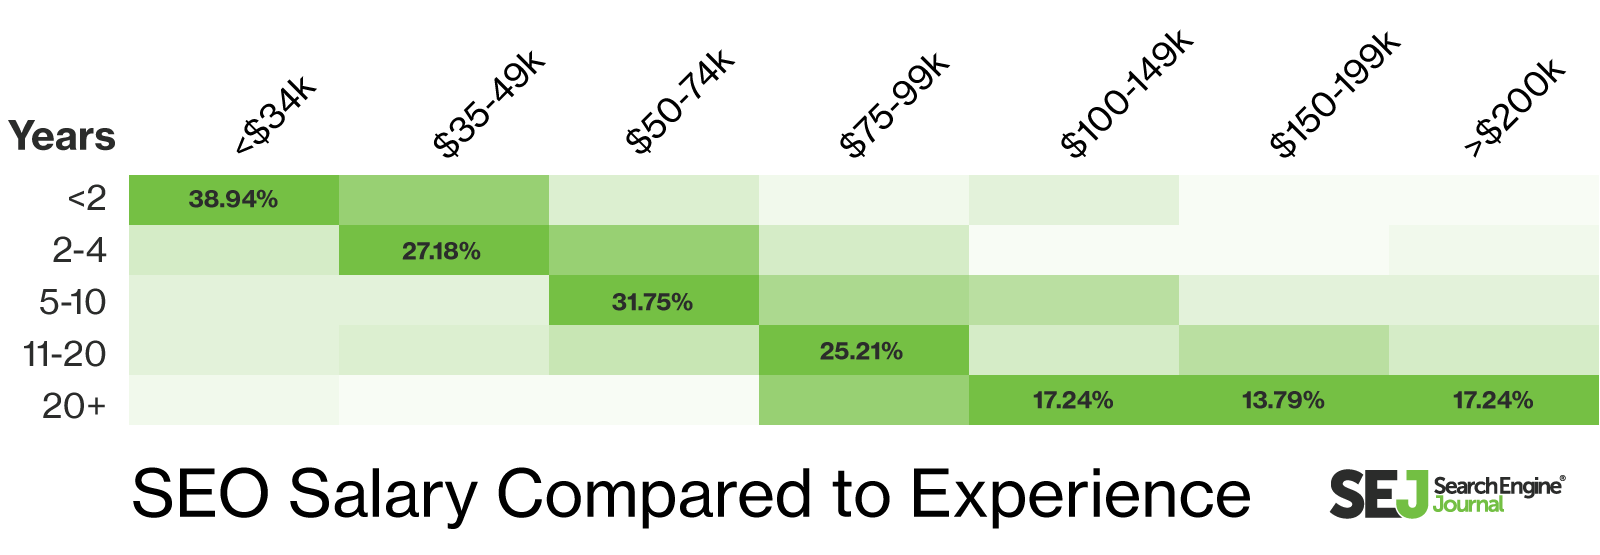 Average SEO salary by years of experience